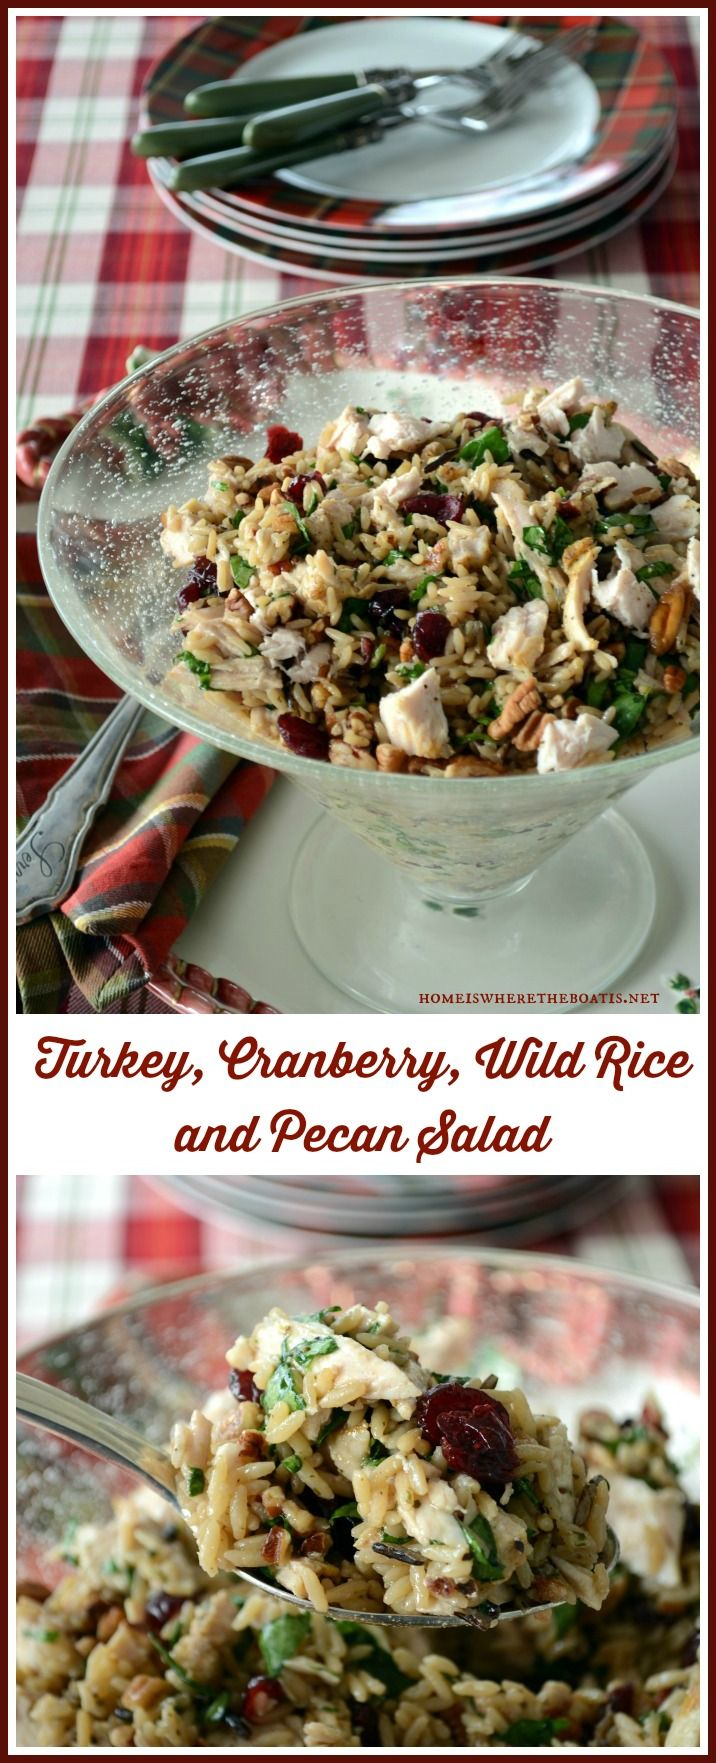 Turkey, Cranberry, Wild Rice and Pecan Salad